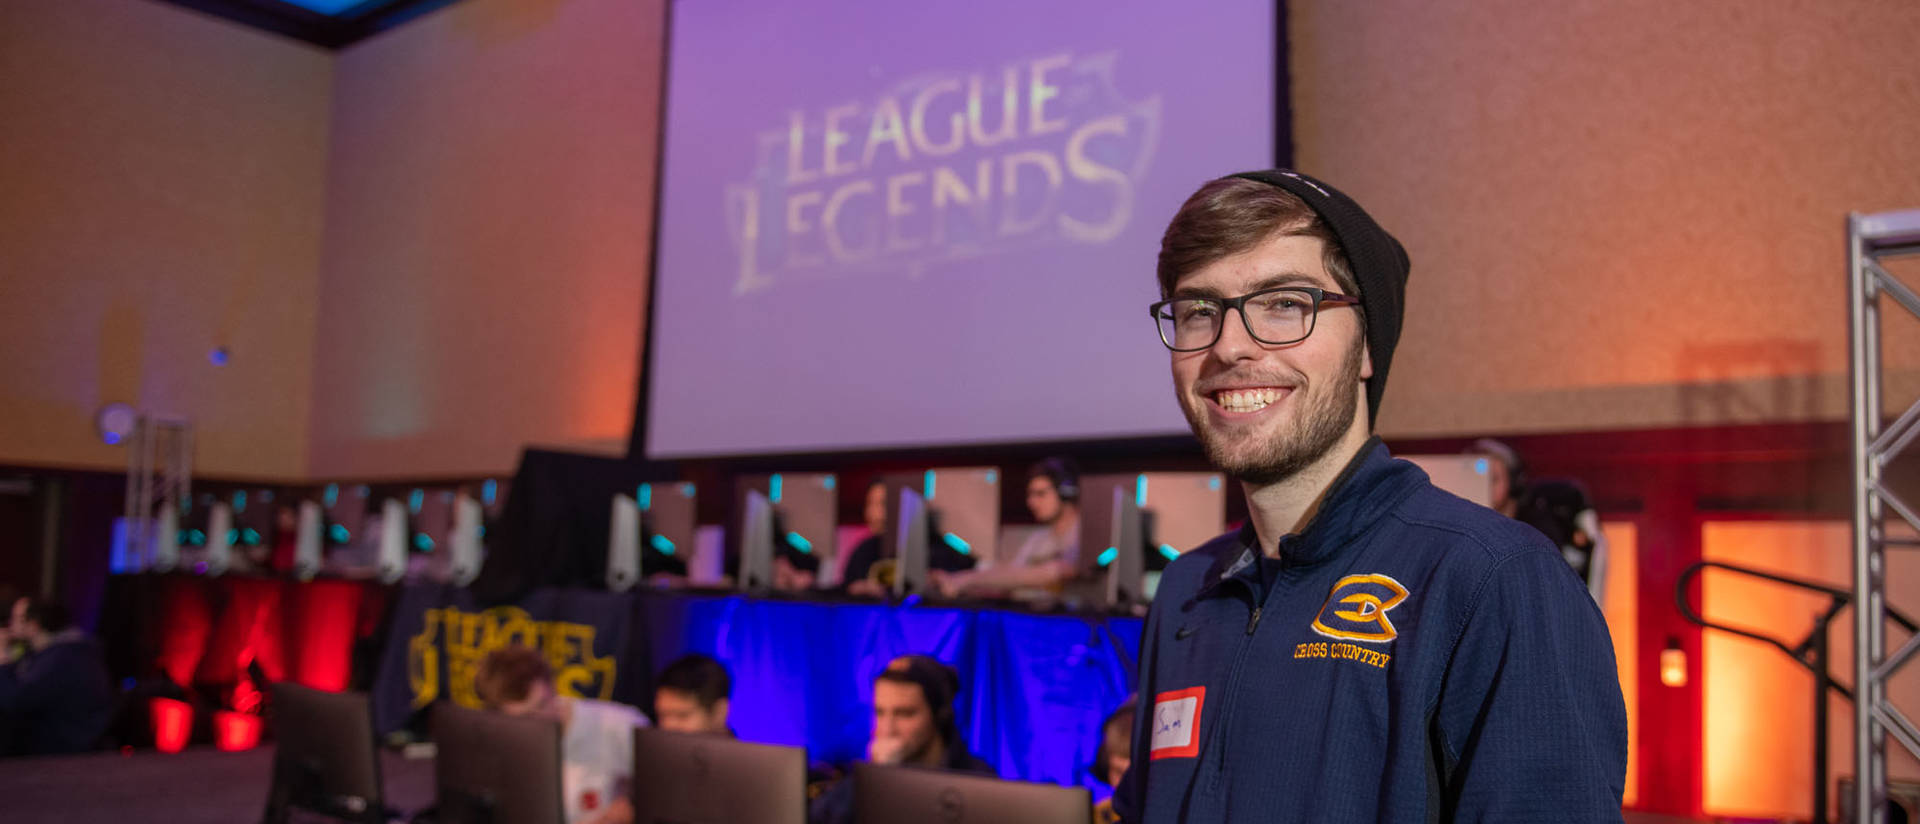 Senior geography major Sam Kuhlmann created and oversees the Blugold League of Legends, UW-Eau Claire's first esports club.